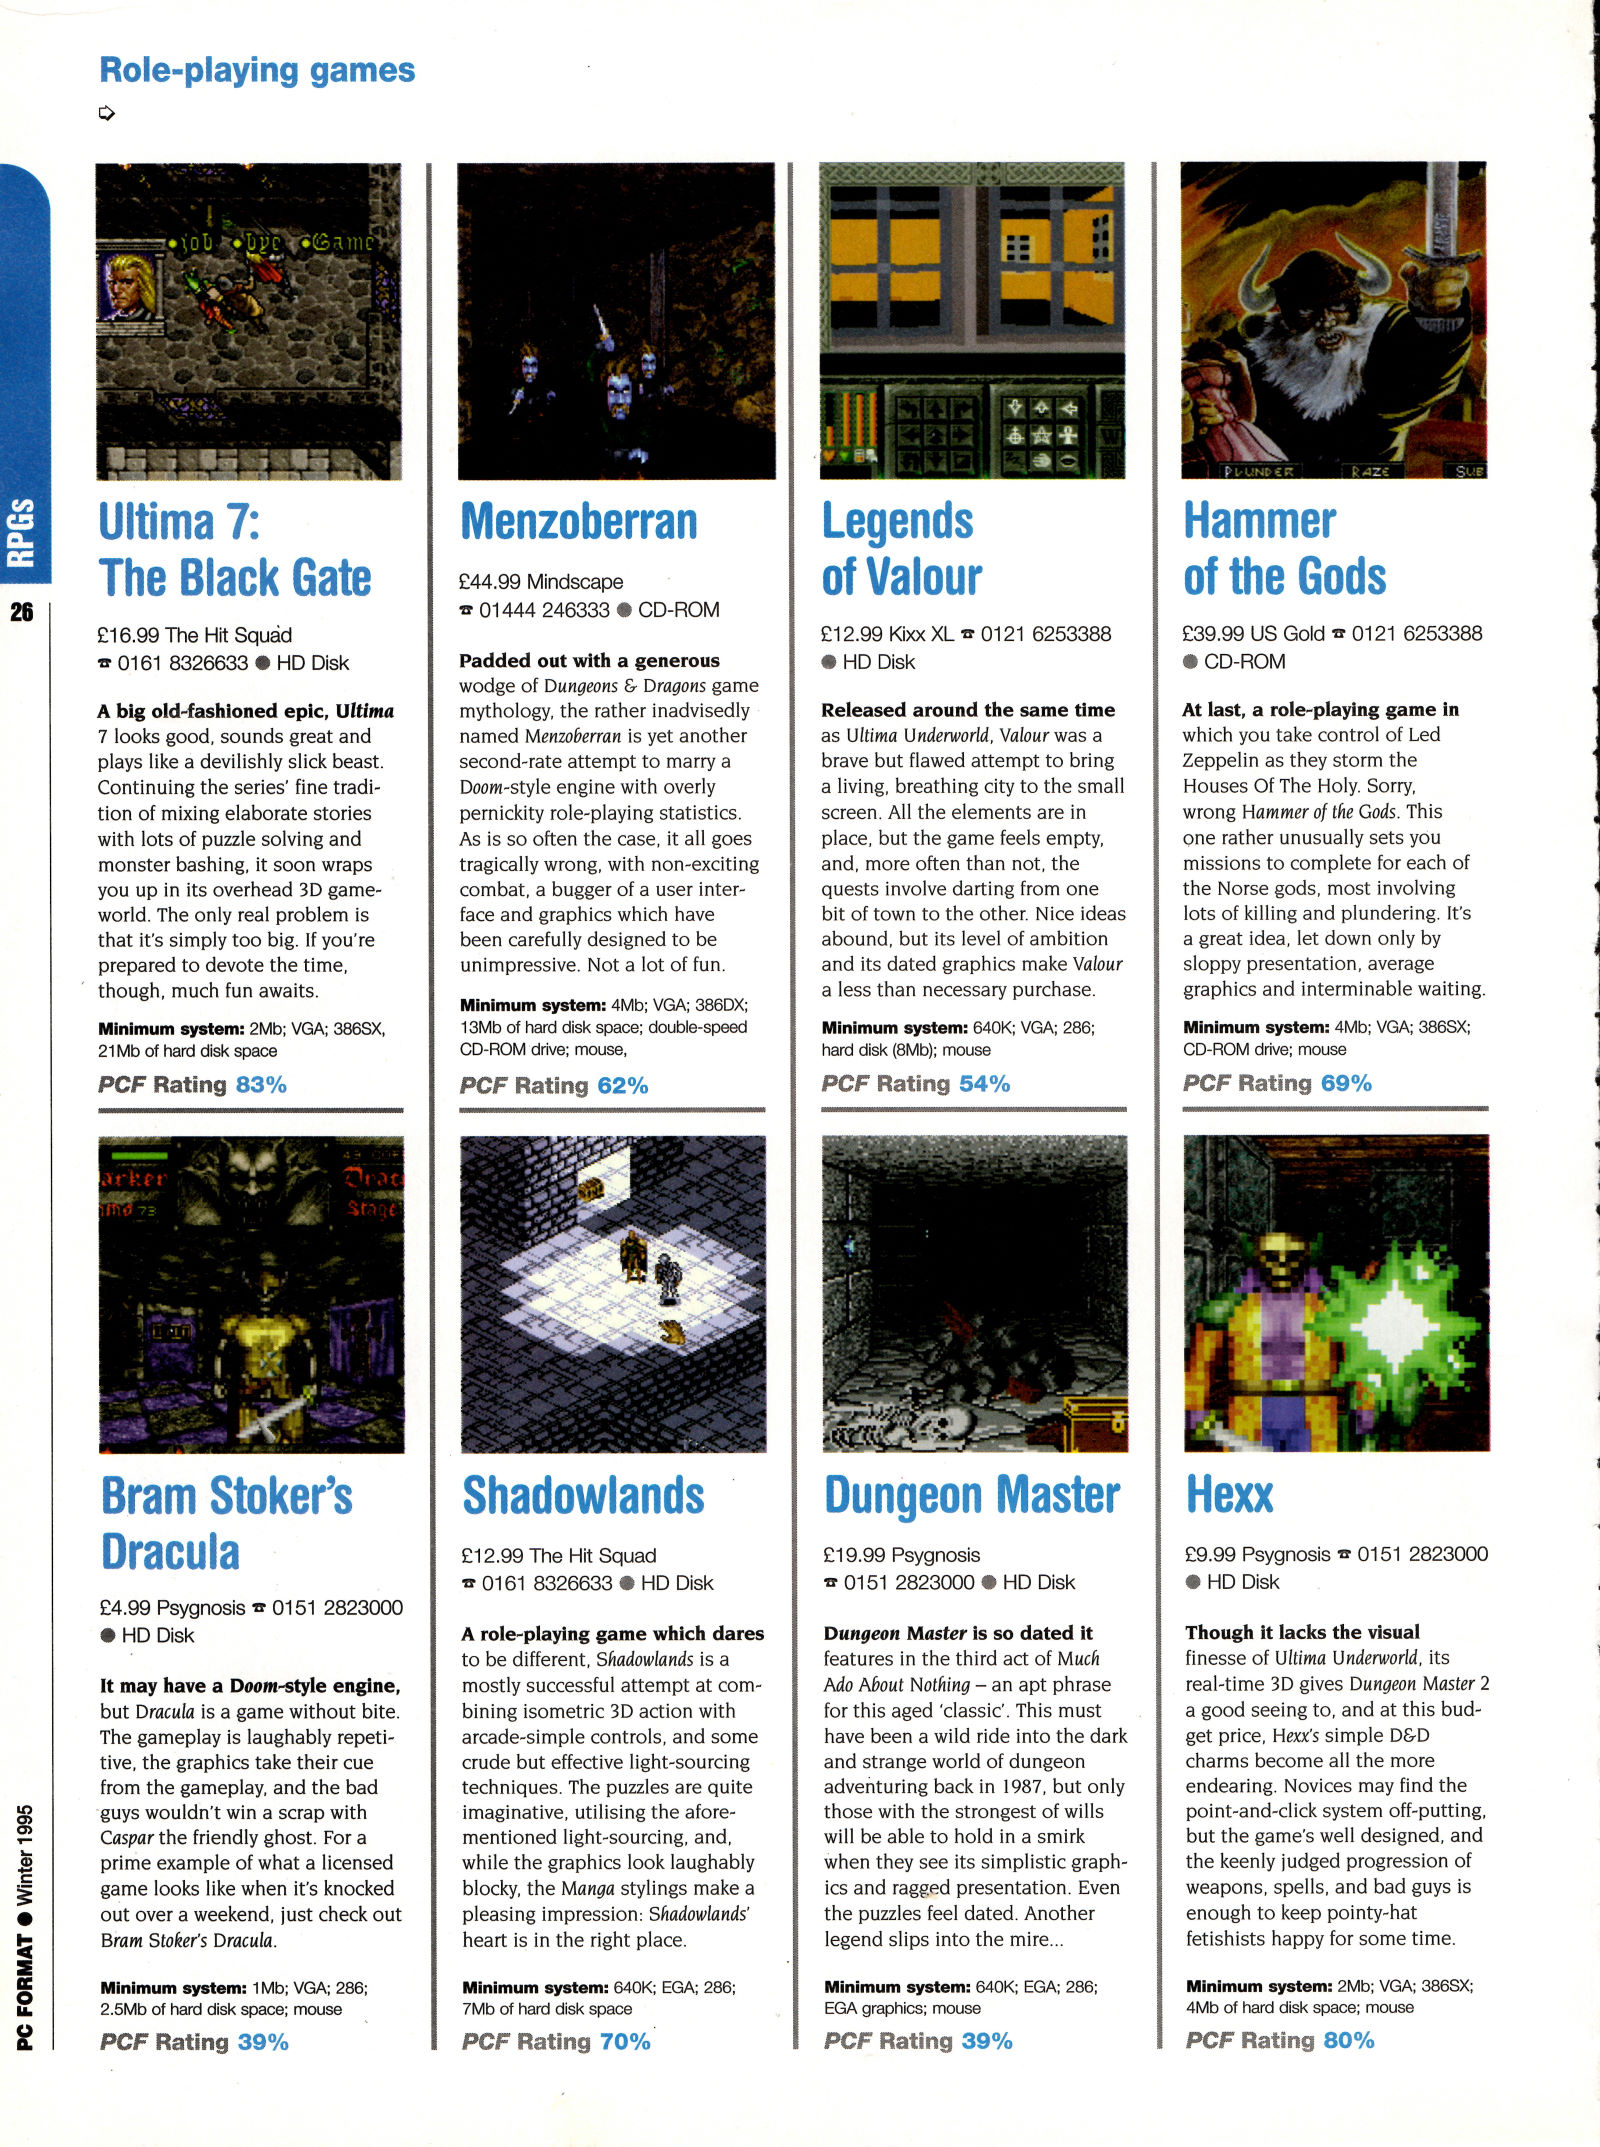 Dungeon Master for PC Review published in British magazine 'PC Format', Winter 1995, Page 26